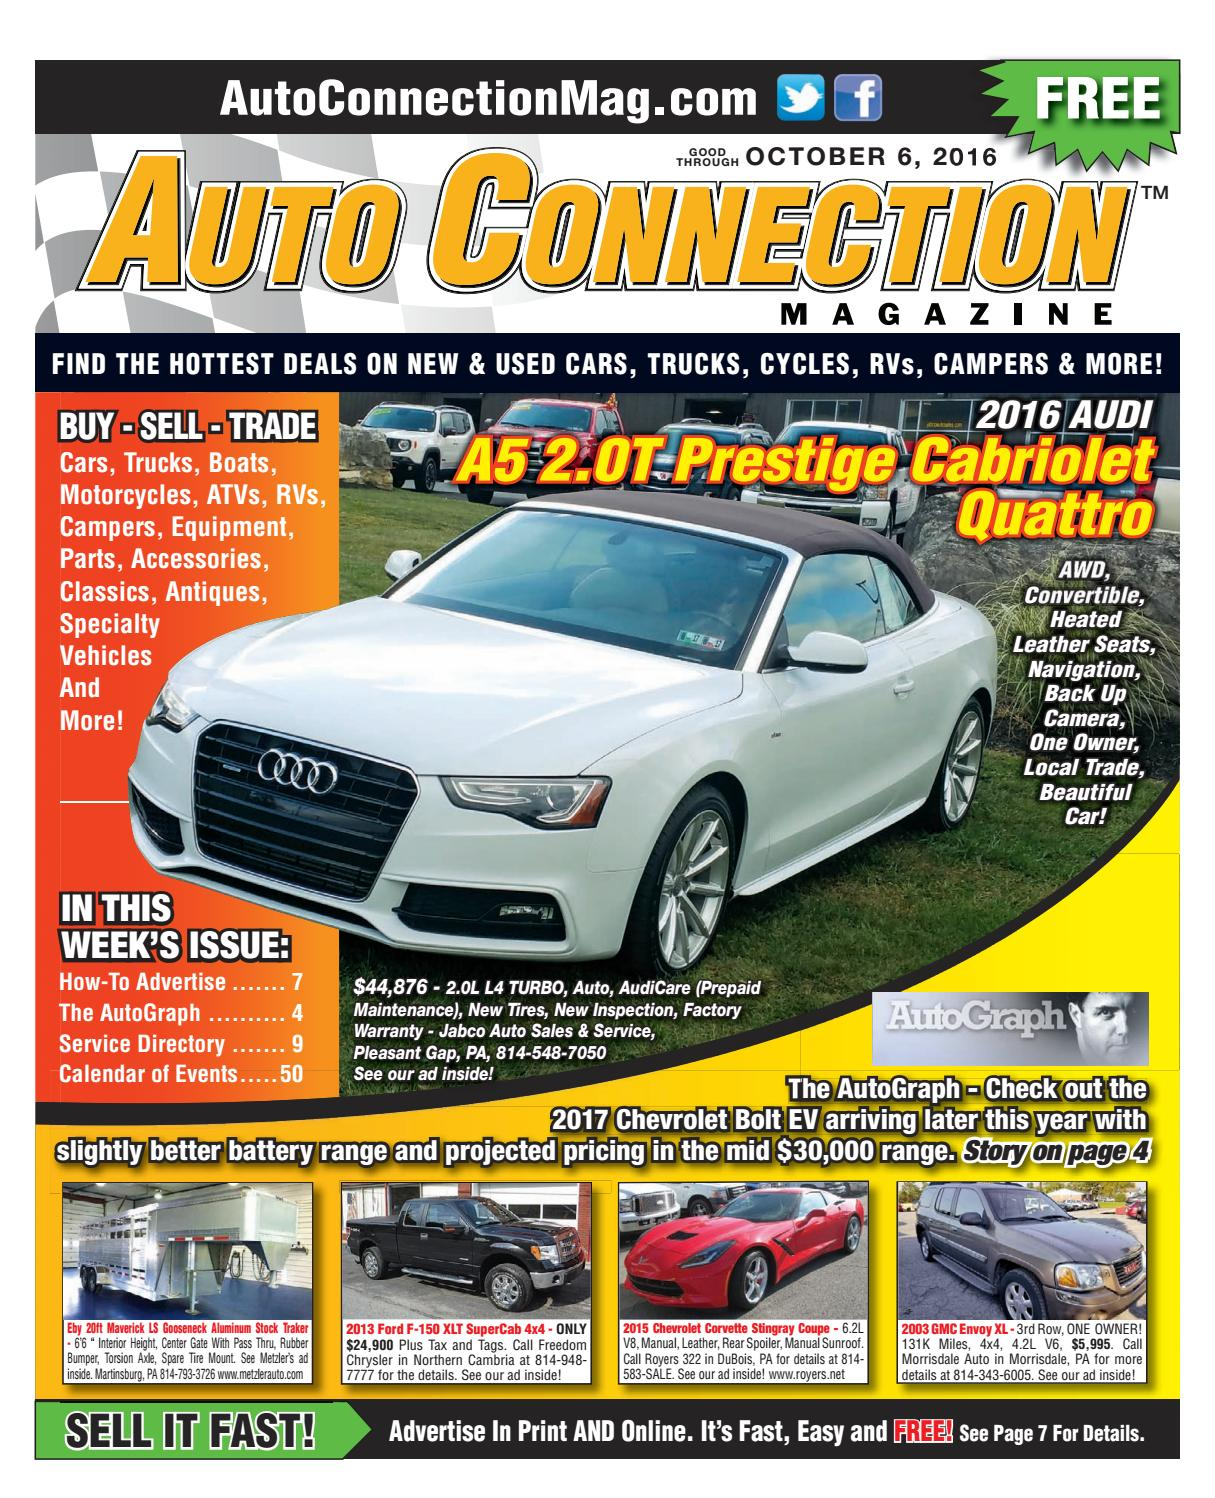 10 06 16 Auto Connection Magazine By Issuu Alternator Wiring Harness Concours 390 Xr7 Repro 1967